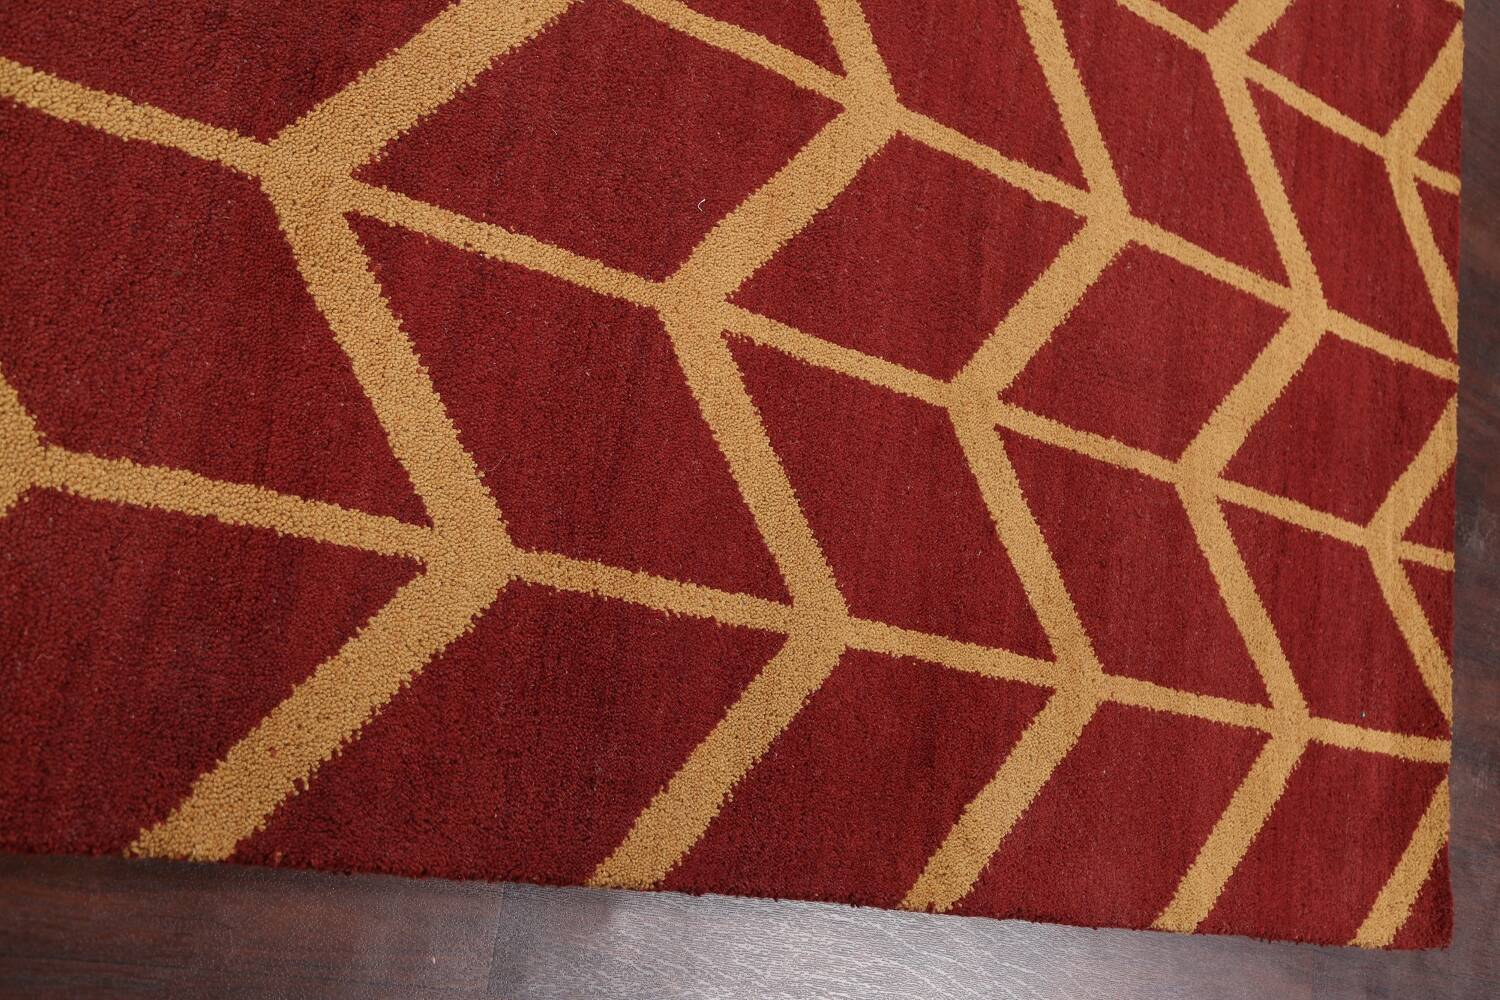 All-Over Moroccan Wool Area Rug 8x10 image 10